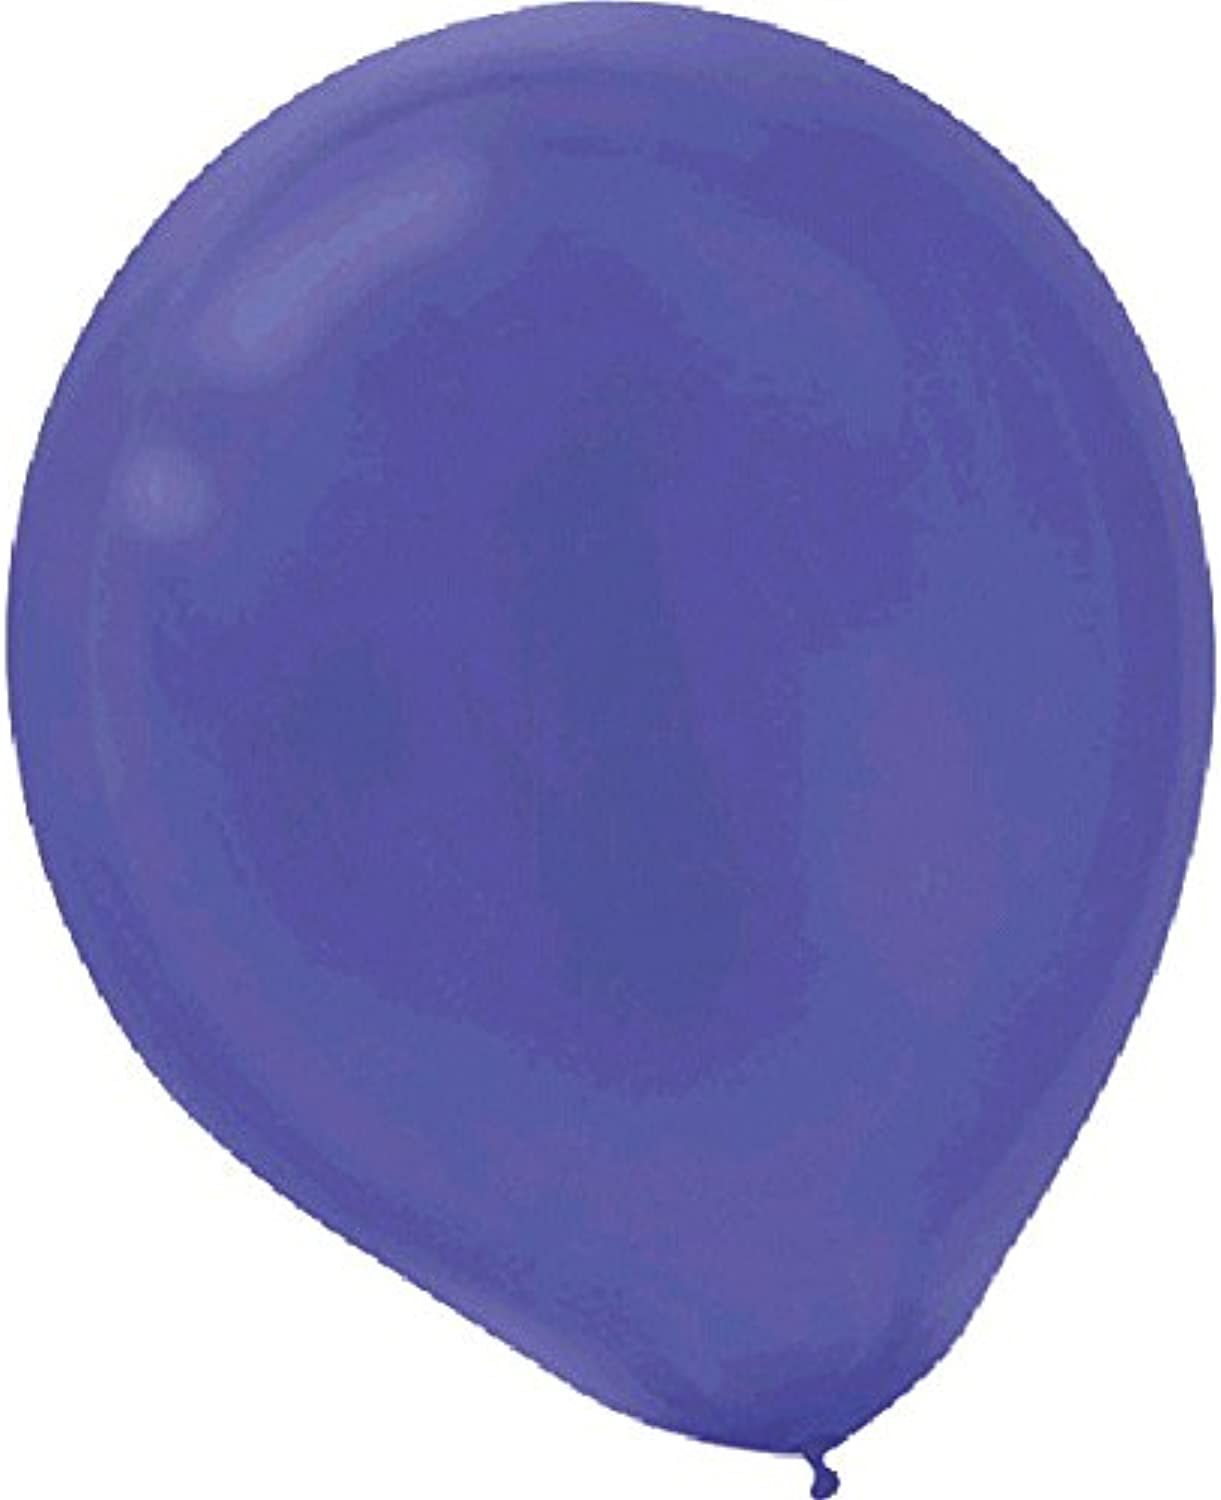 Amscan Balloons color Theme Party Decoration,Latex, New Purple, 9, Pack of 12, 20 Pieces per Pack